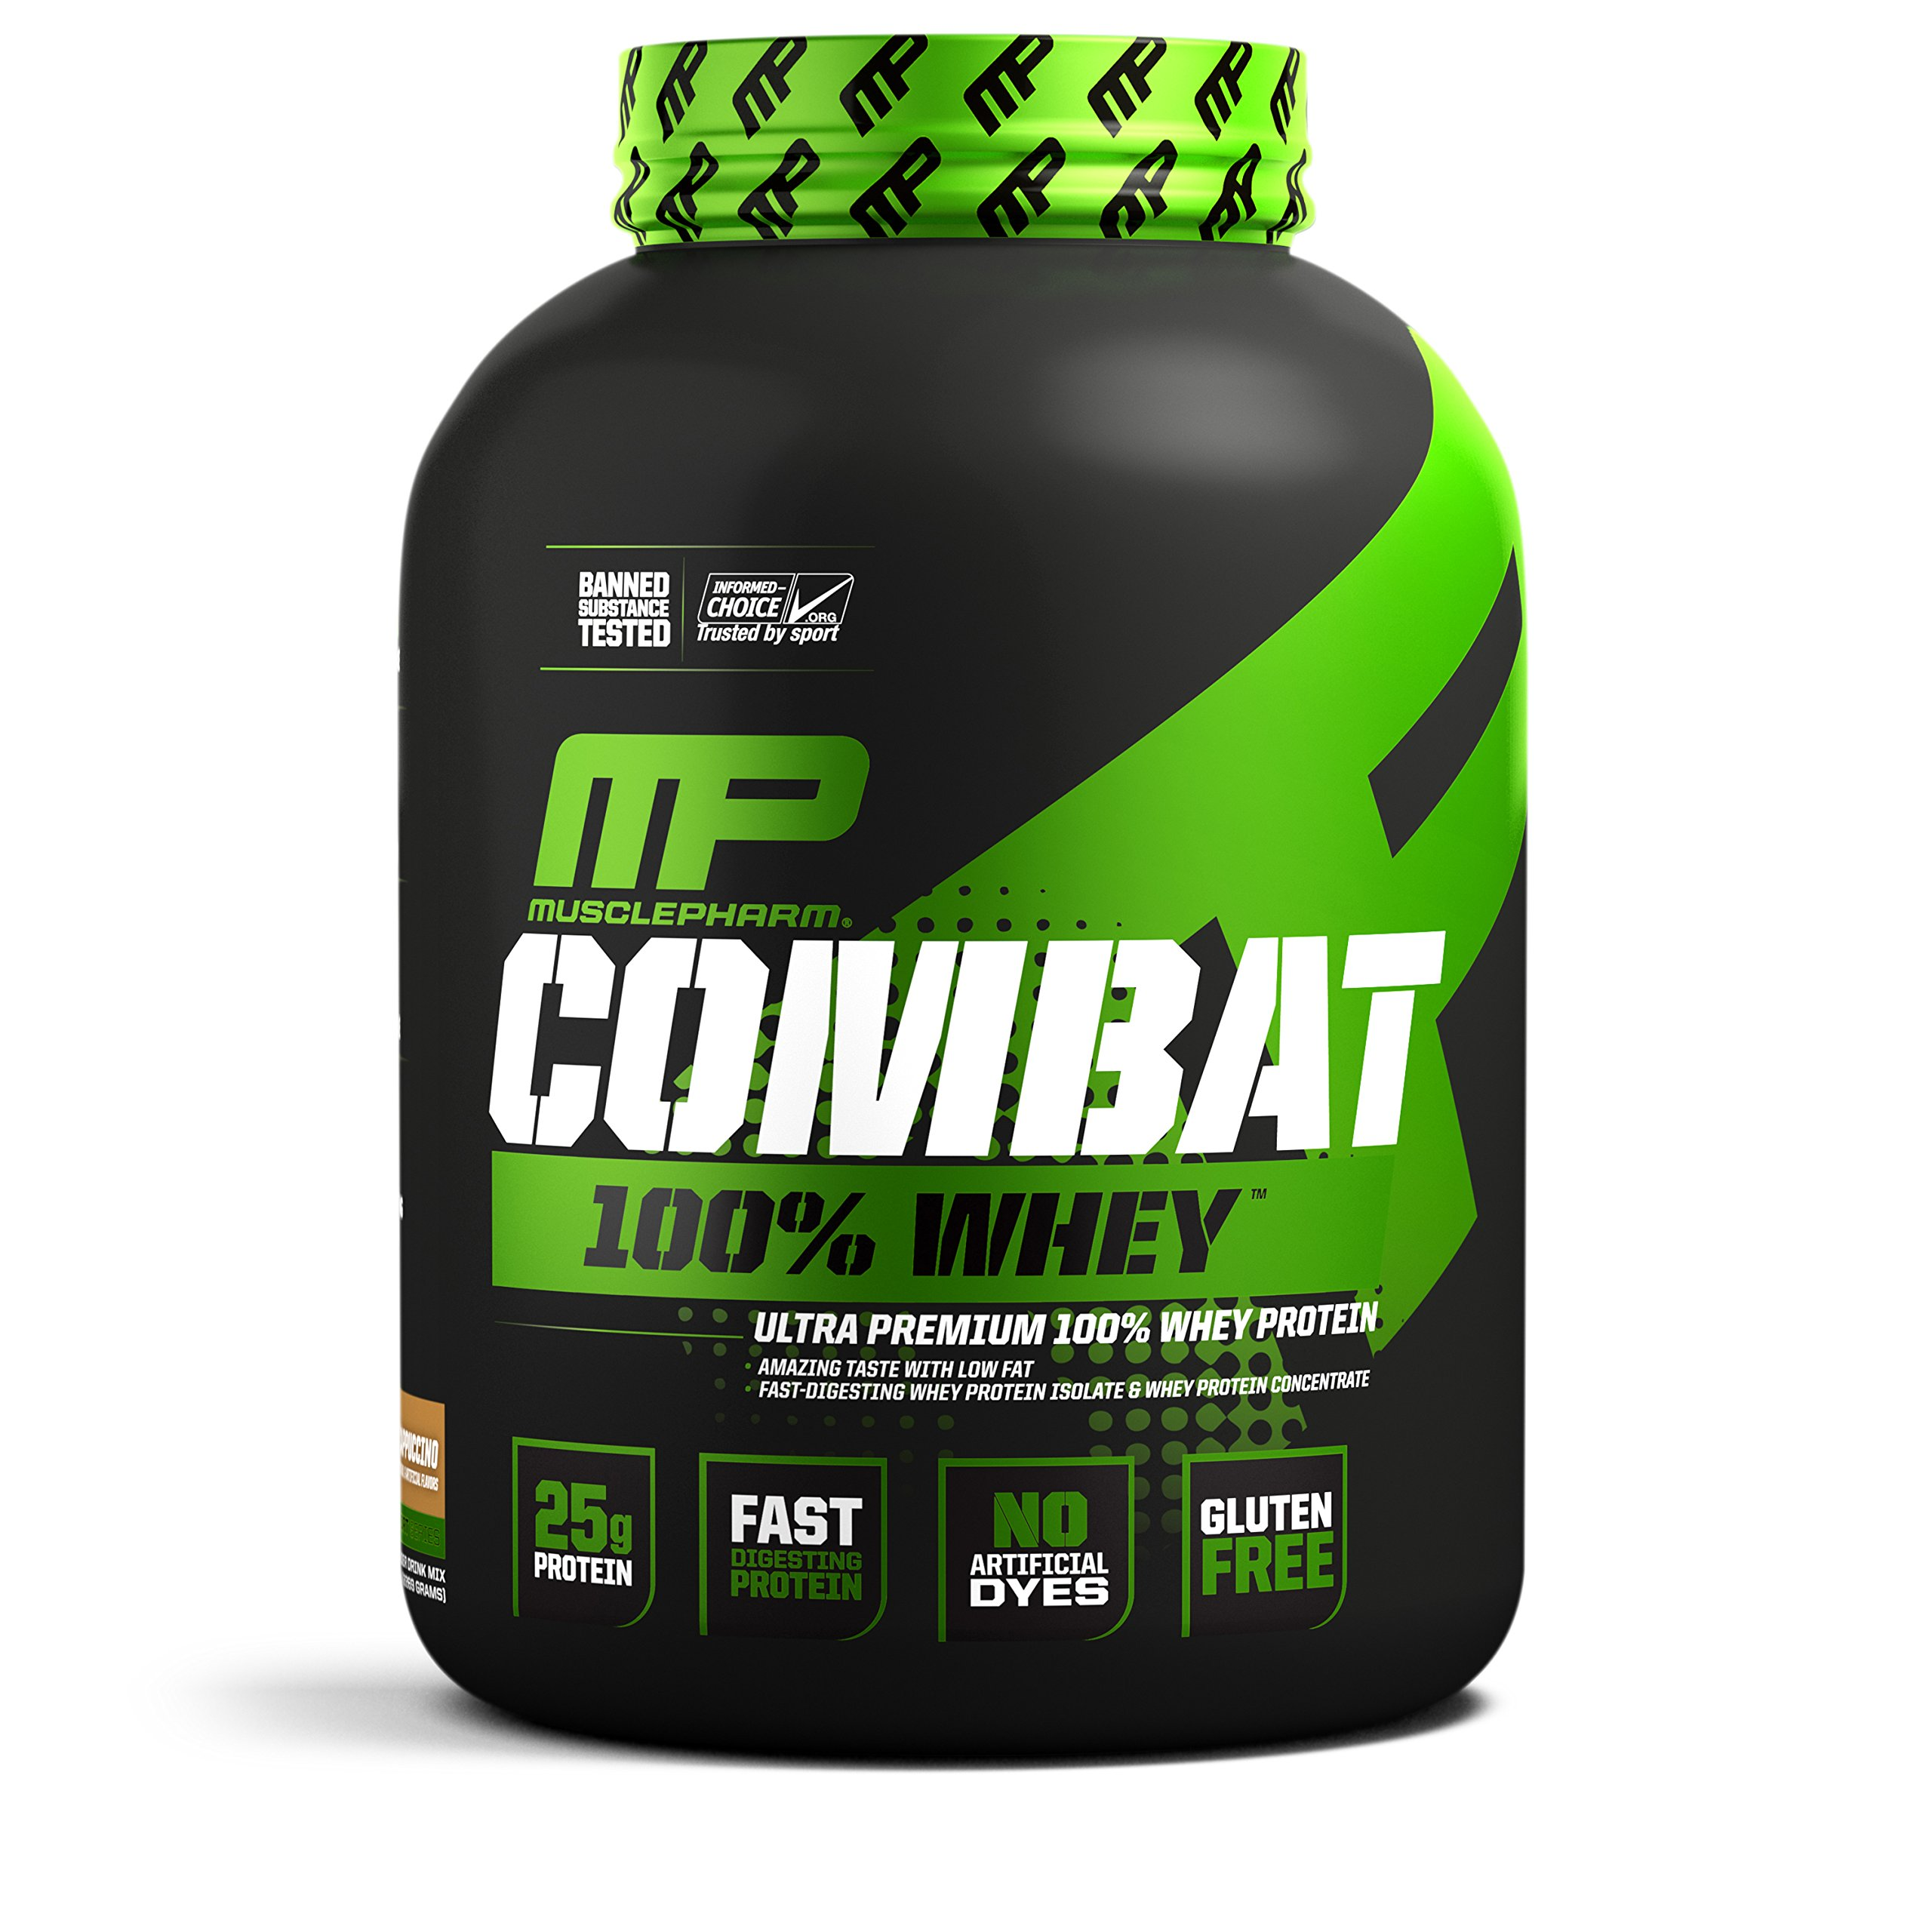 MusclePharm Combat 100% Whey, Muscle-Building Whey Protein Powder, 25 g of Ultra-Premium, Gluten-Free, Low-Fat Blend of Fast-Digesting Whey Protein, cappuccino, 5-Pound, 68 Servings